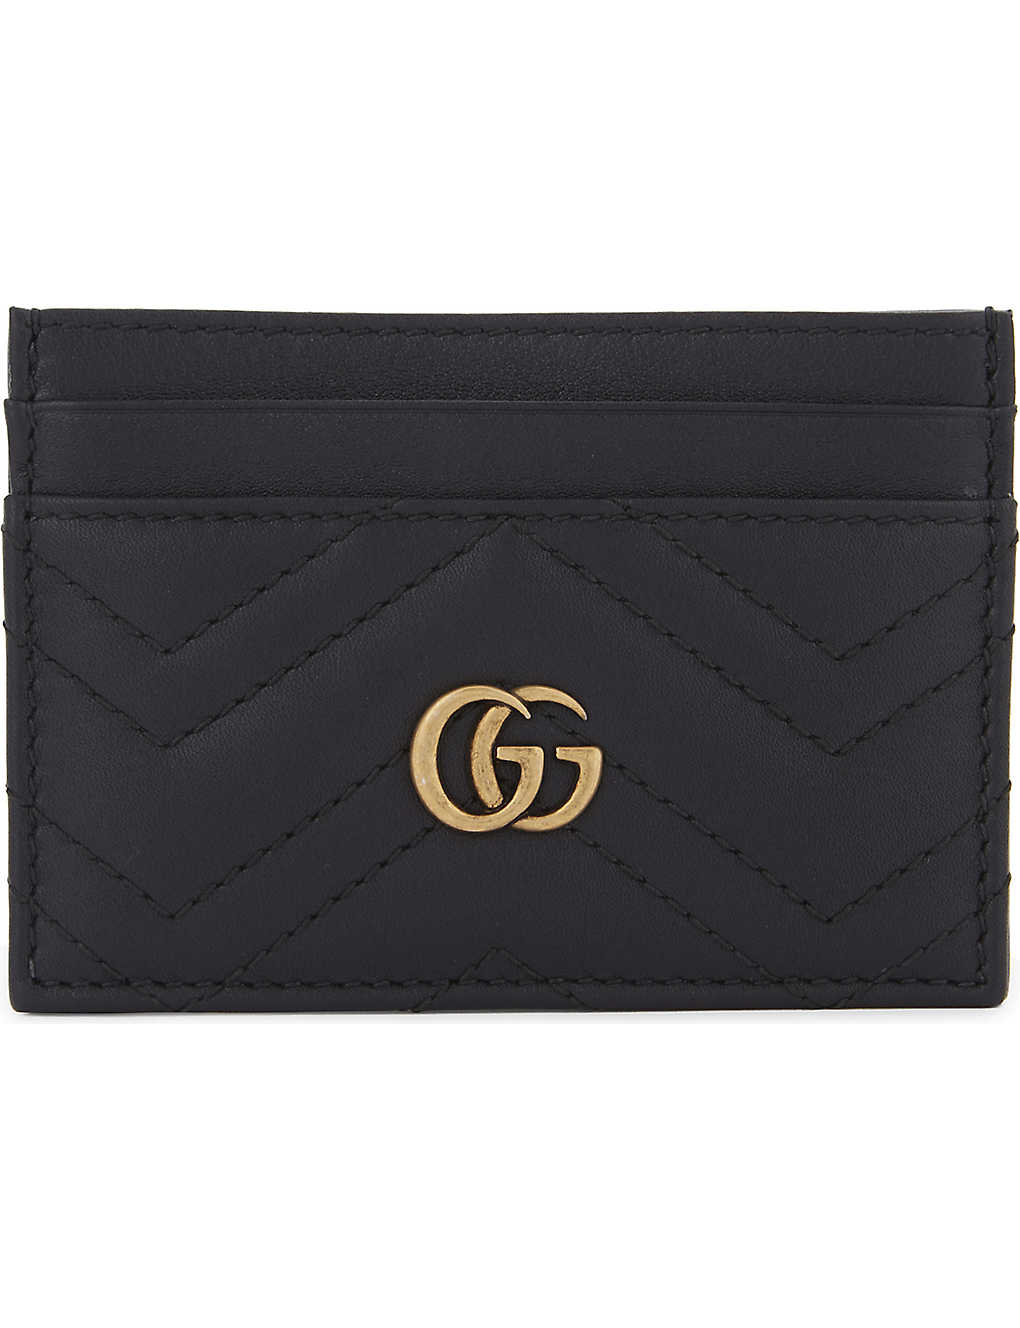 b93c87d6d82d10 GUCCI - GG Marmont leather card holder | Selfridges.com